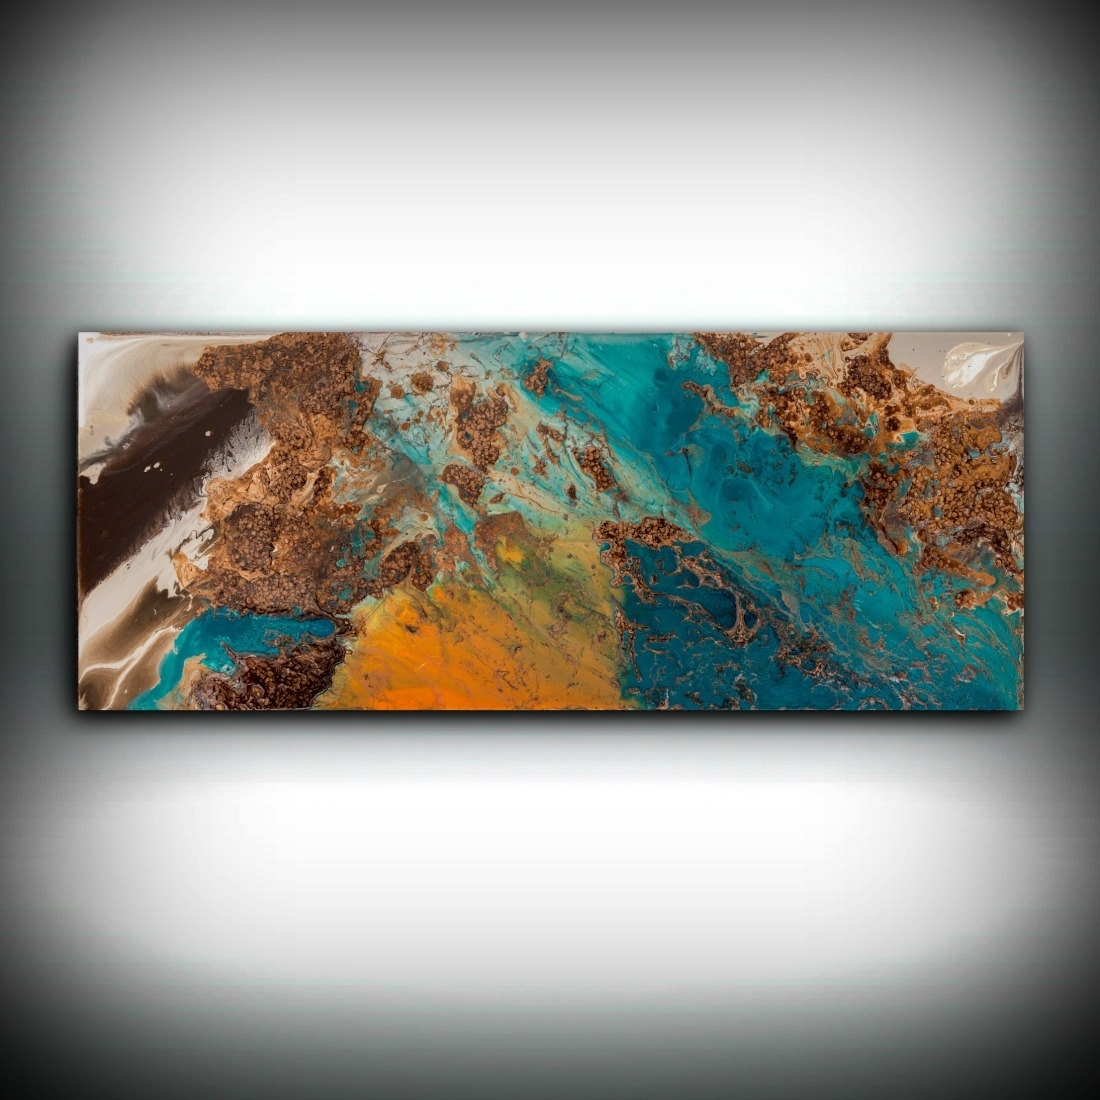 Sale Blue And Copper Art, Wall Art Prints Fine Art Prints Abstract Regarding Most Popular Abstract Wall Art Posters (View 19 of 20)